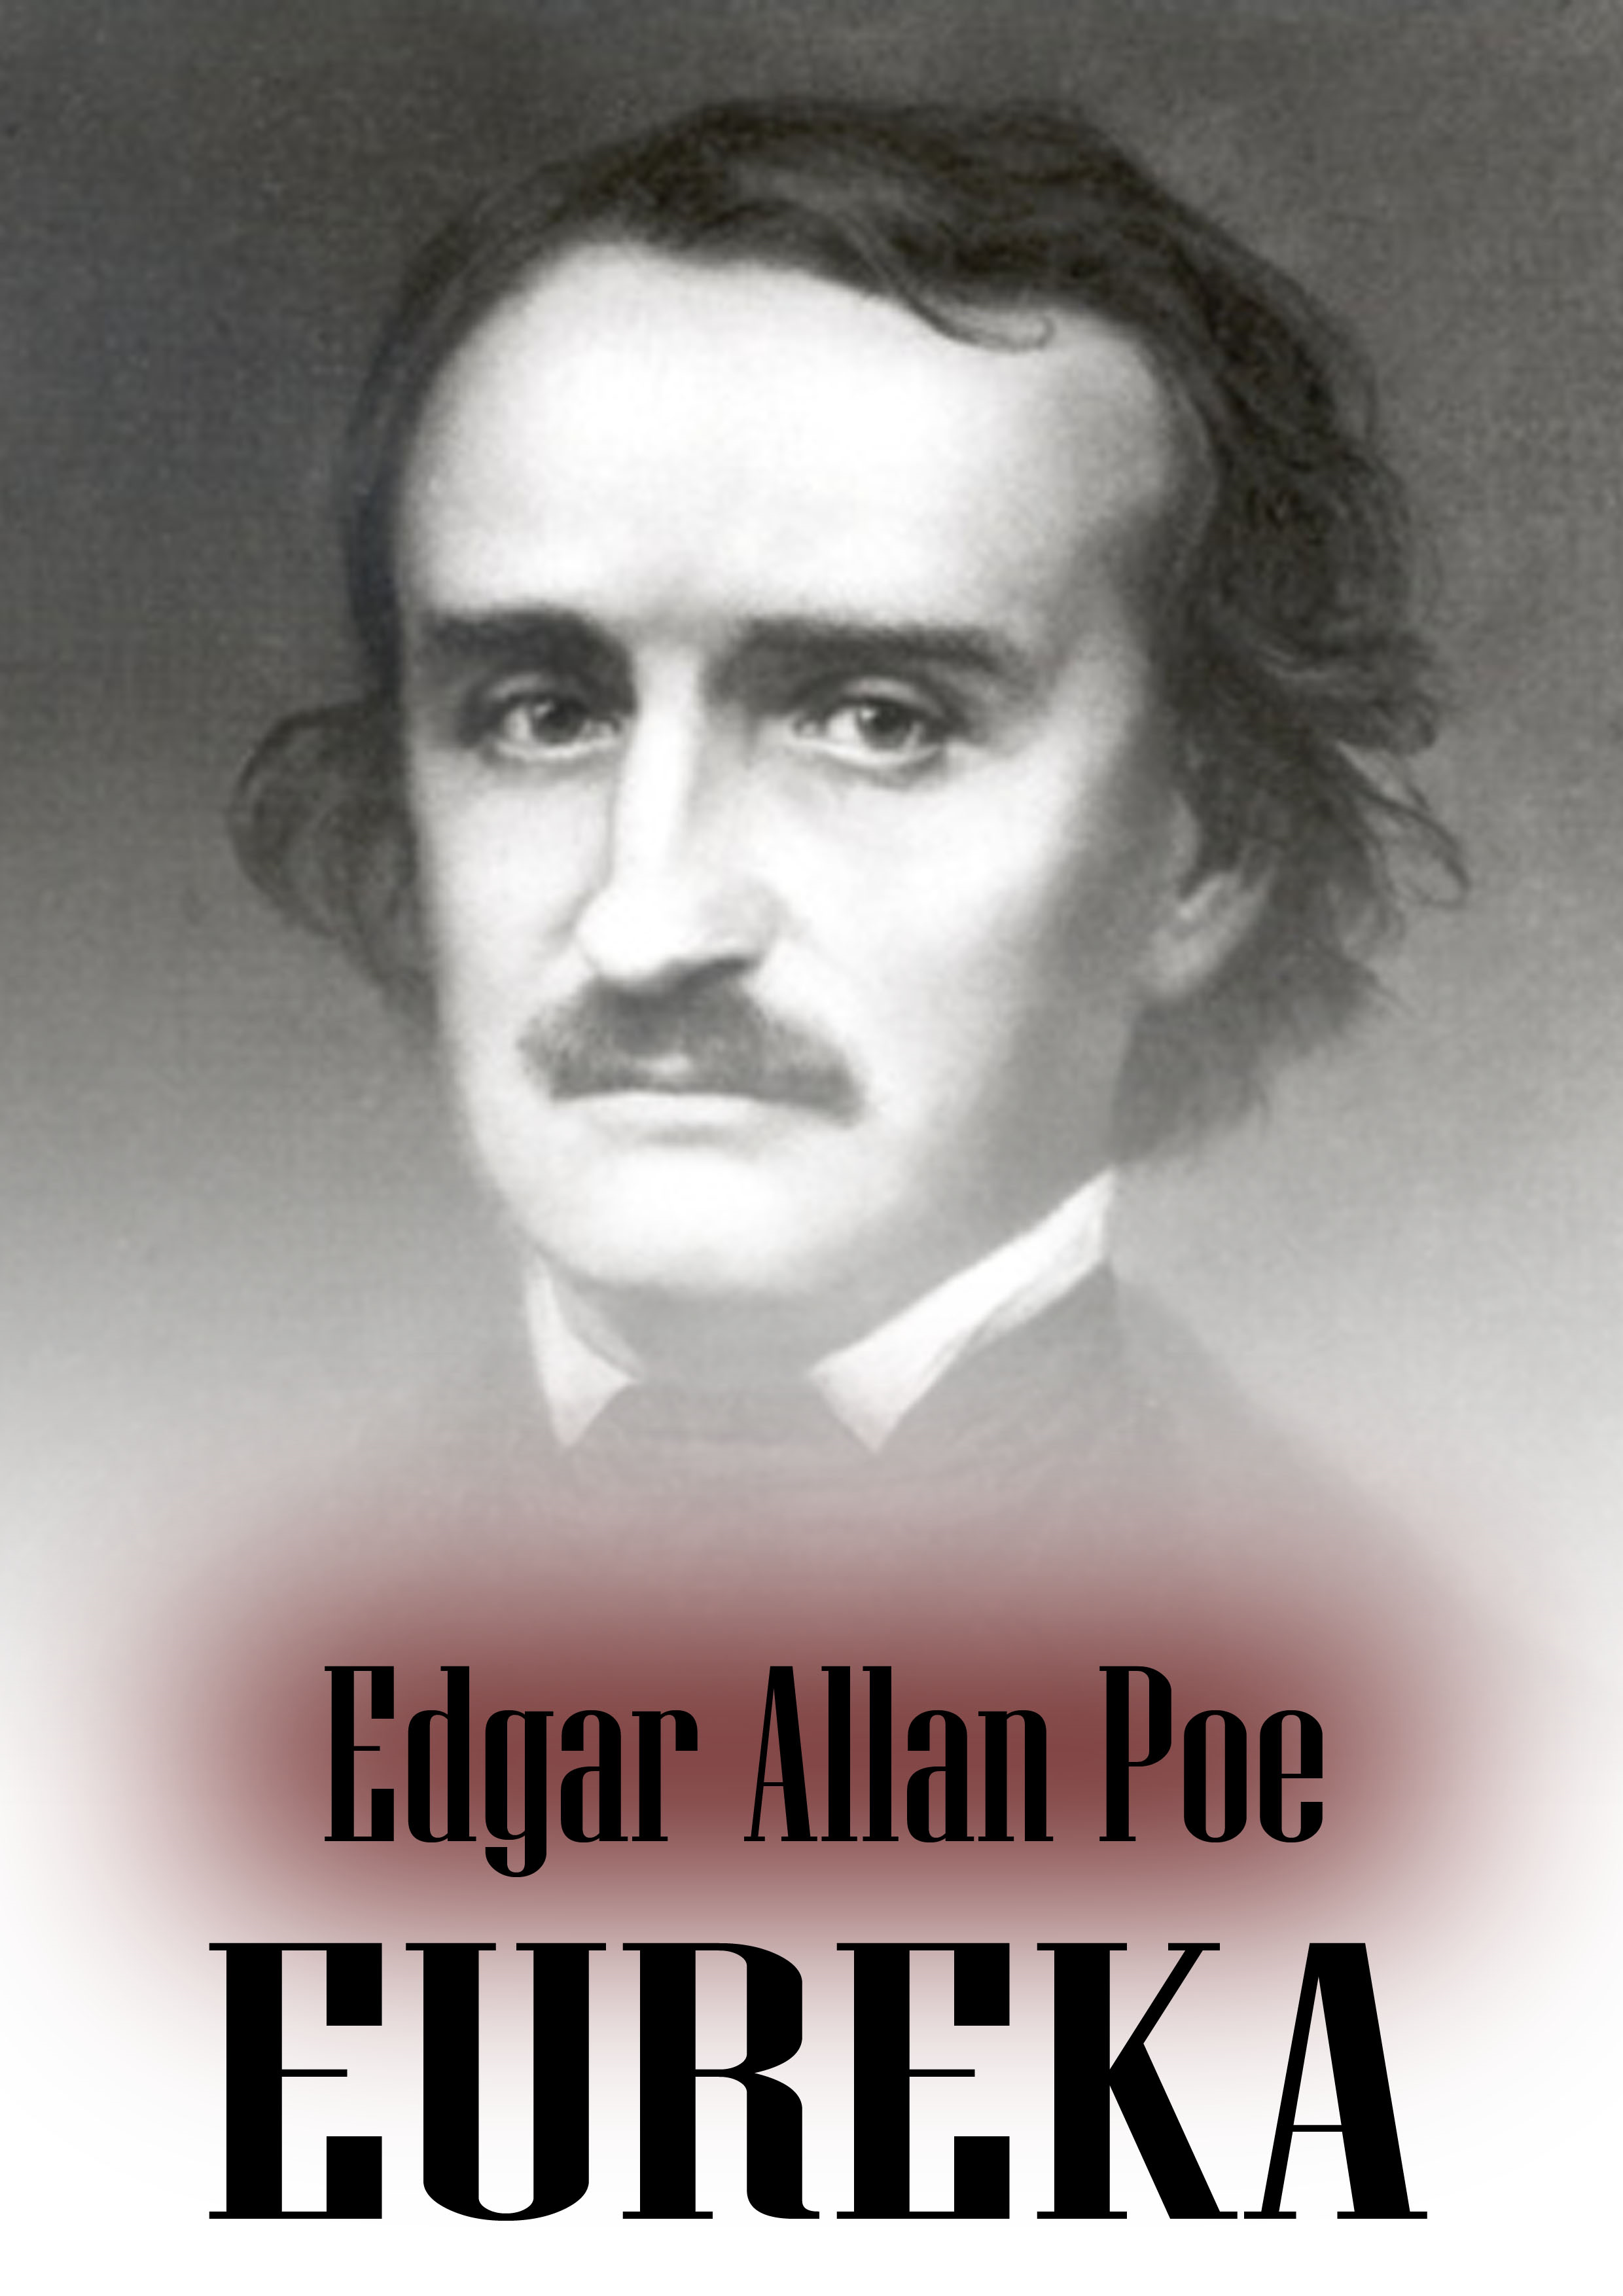 edgar allan poe 3 essay The philosophy of composition is an 1846 essay written by american writer  edgar allan poe  generally, the essay introduces three of poe's theories  regarding literature the author recounts this idealized process by which he says  he wrote.